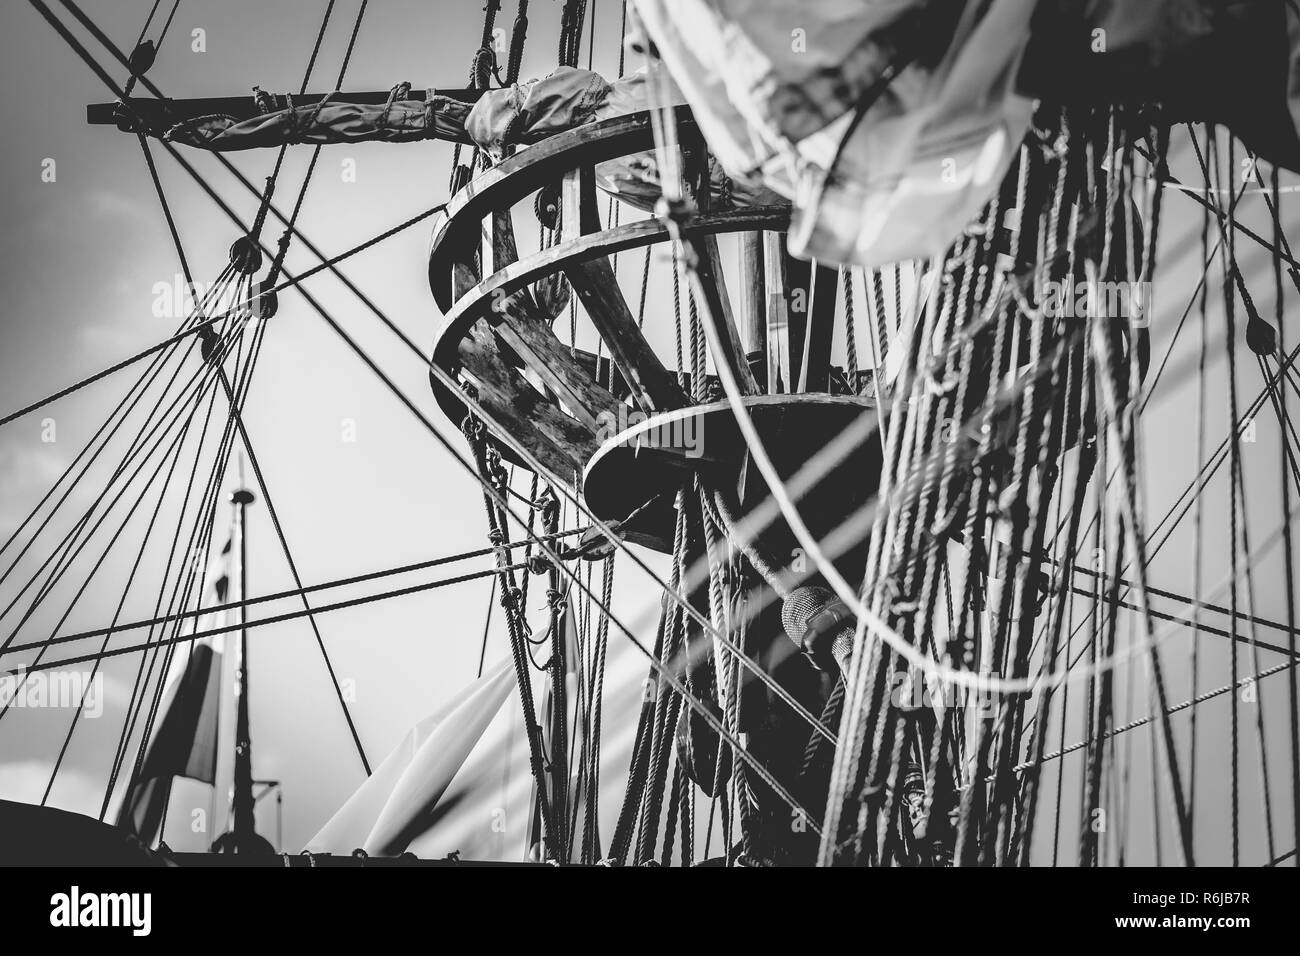 Detail of mast of ship. Detailed rigging with sails. Vintage sailing ship block and tackle. handmade woodwork statues and a forest on boat masts - Stock Image